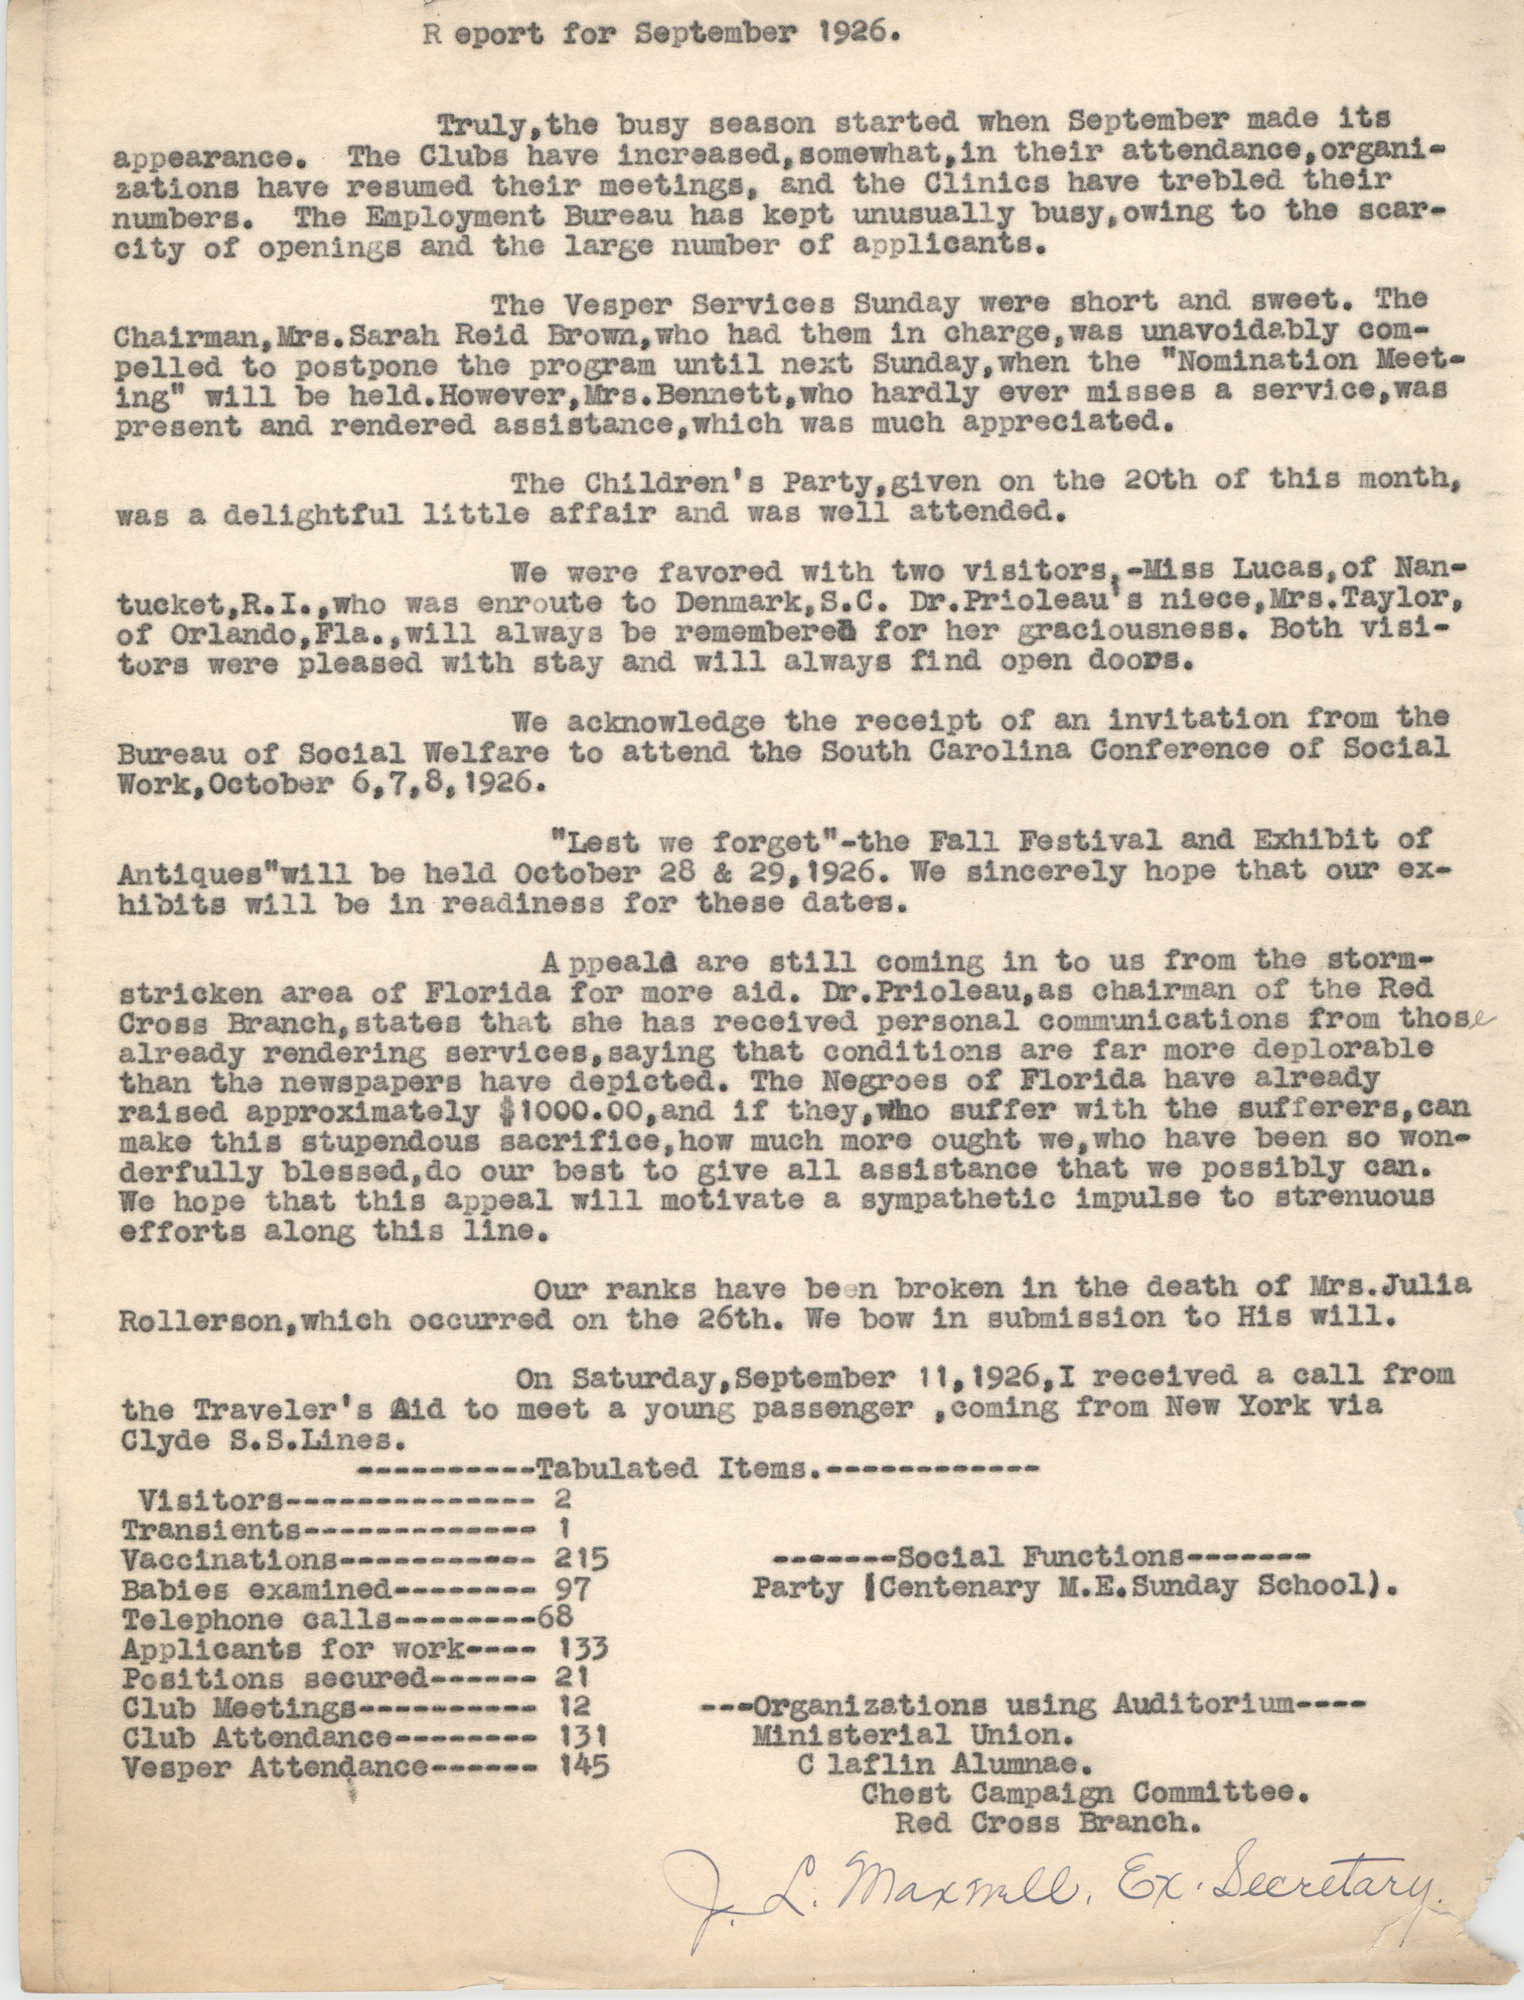 Monthly Report for the Coming Street Y.W.C.A., September 1926